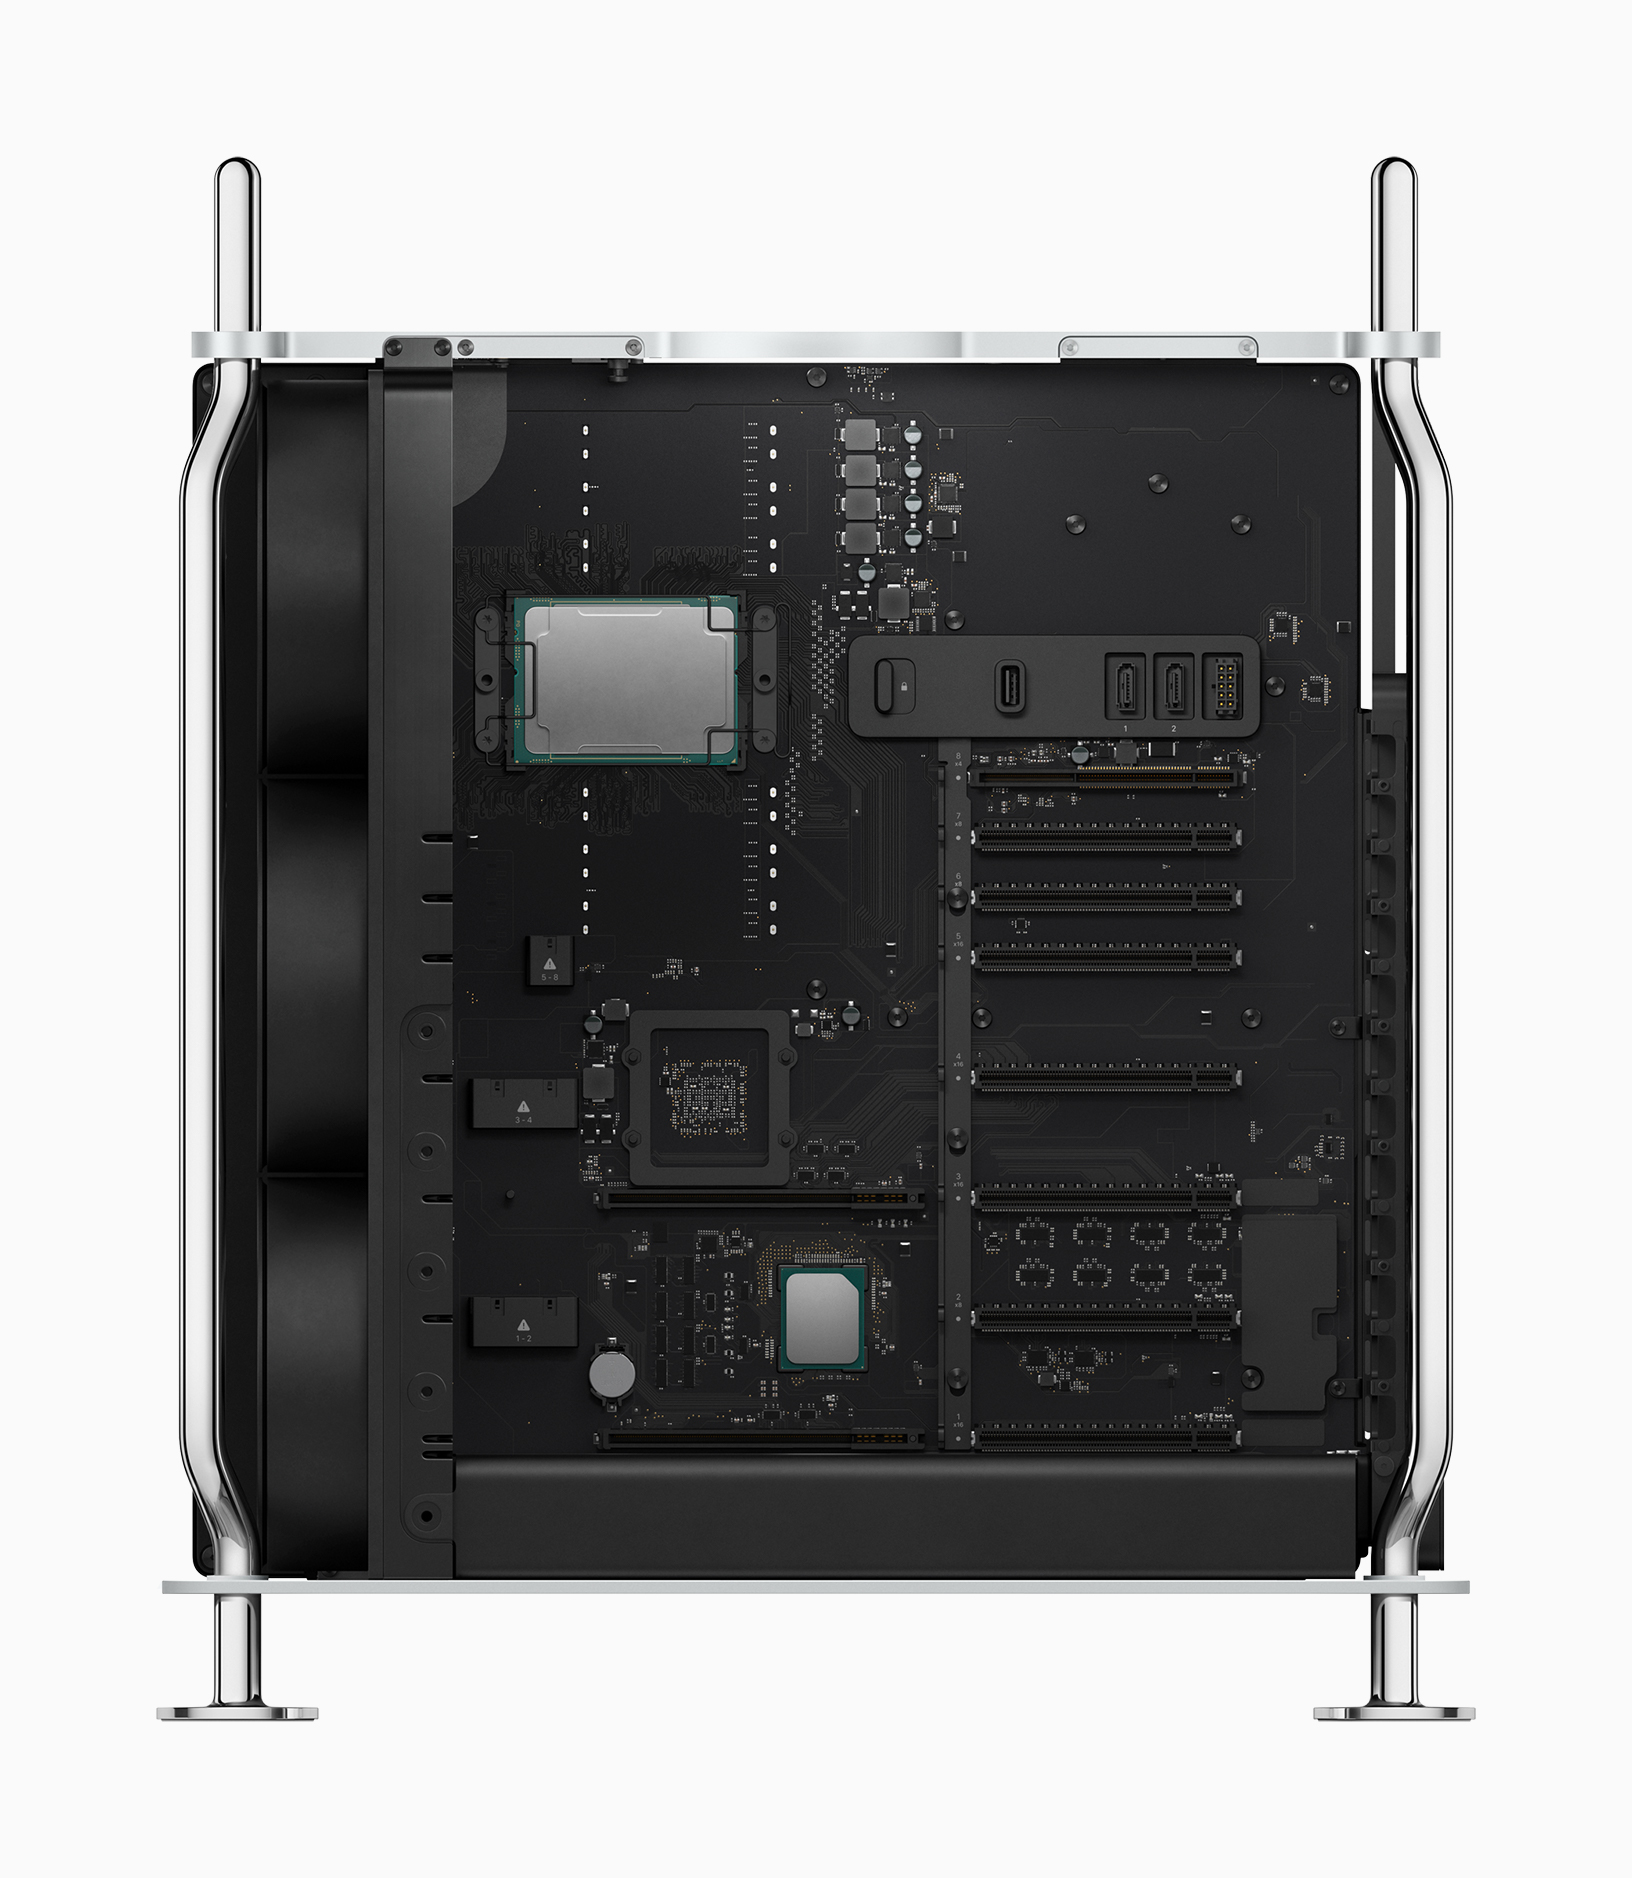 apple mac pro display pro mac pro internal 060319 big.jpg.large 2x